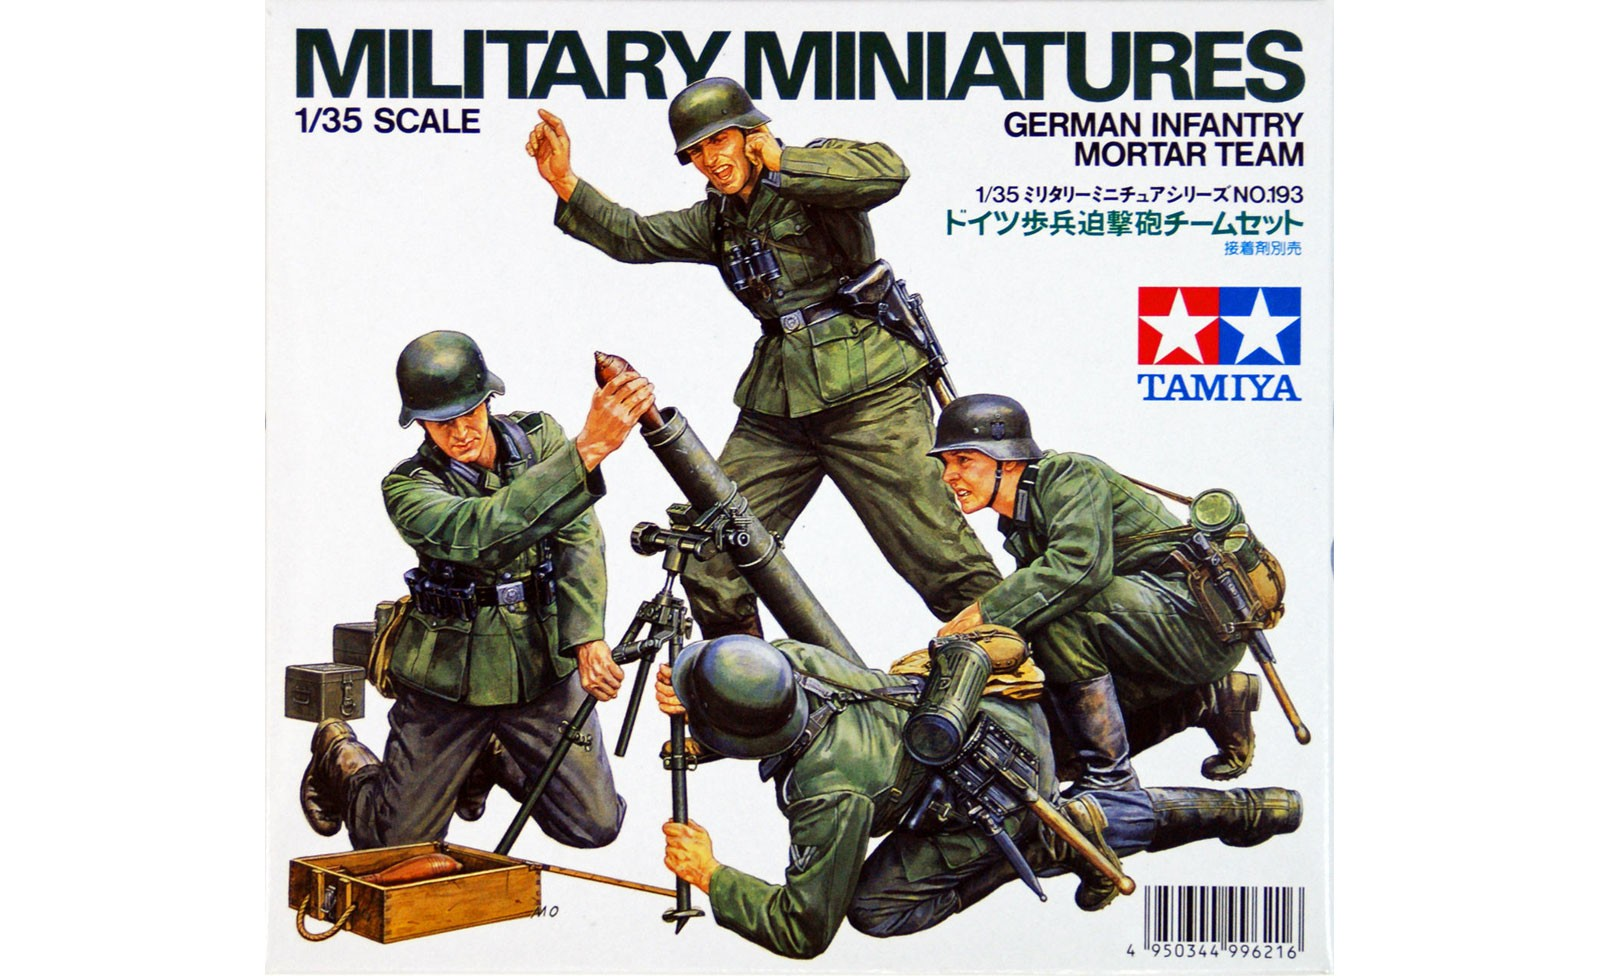 German Infantry Mortar Team - Tamiya 35193 - plastic model kit - 1/35 scale